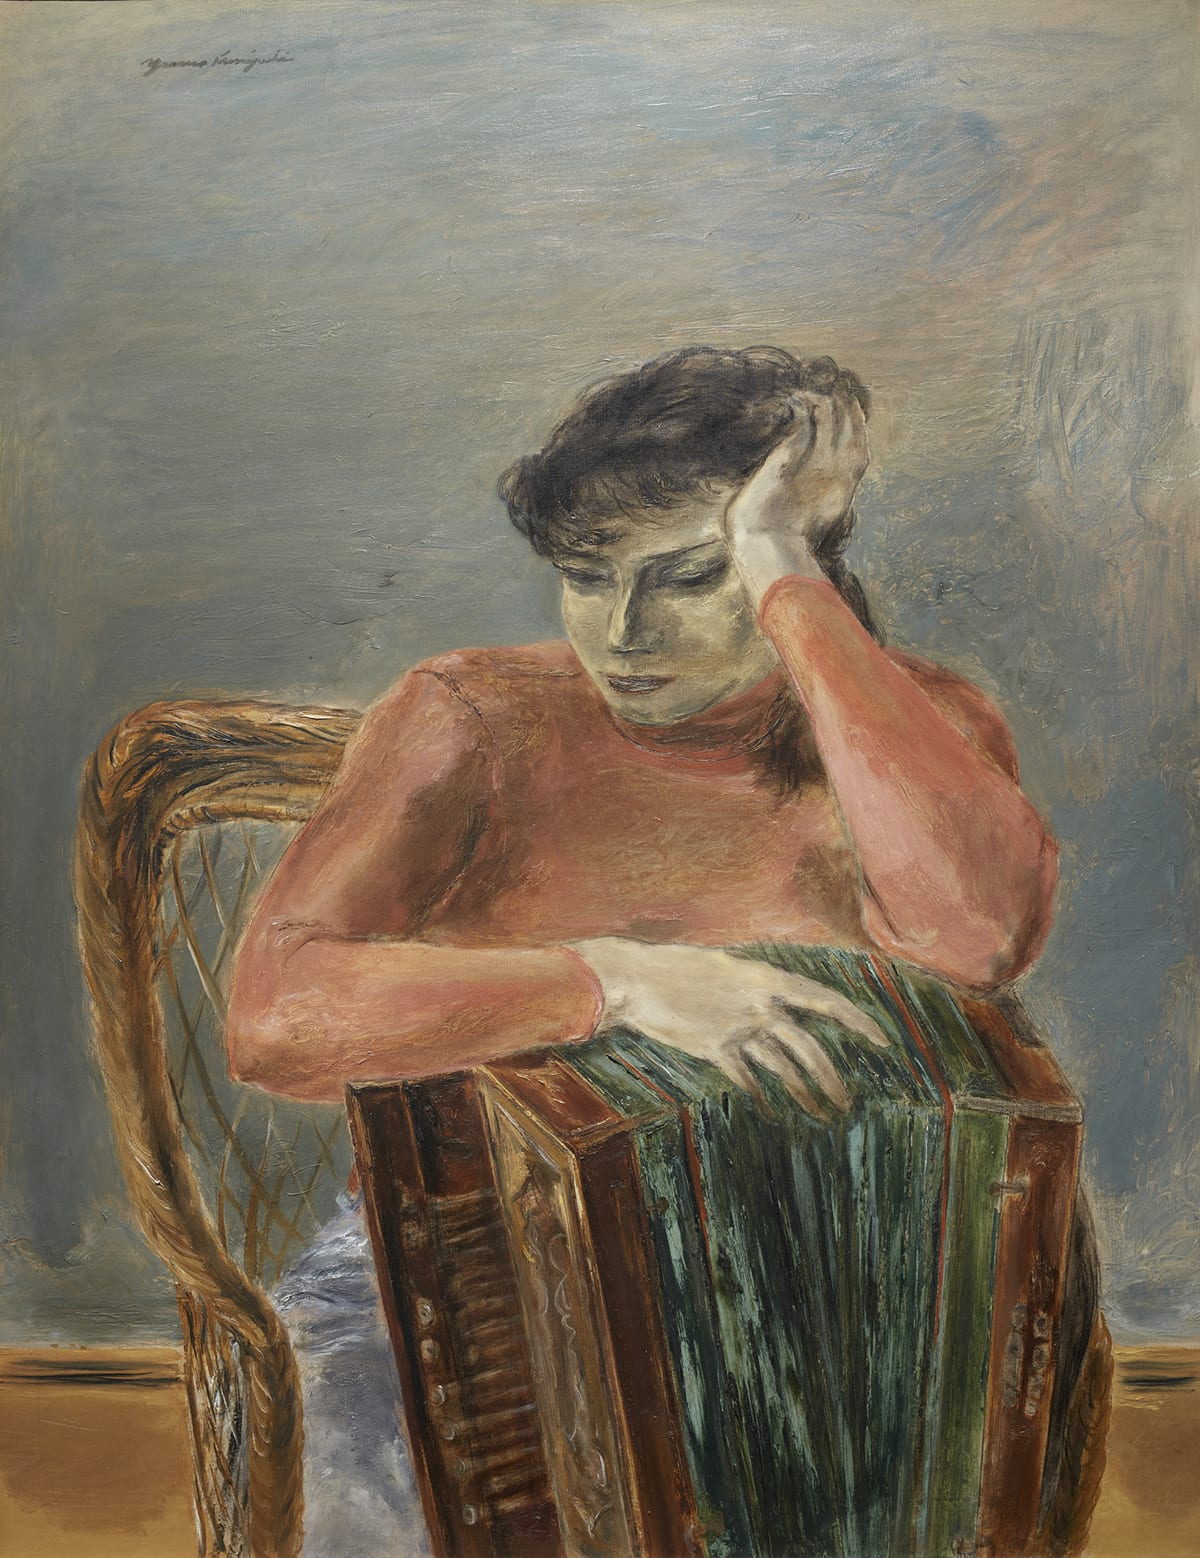 A vertical, rectangular painting of a young, light-skinned woman sitting in a chair with an accordion in front of her. The figure and instrument are at center and take up the bottom three quarters of the painting and almost the full width. The figure has dark wispy hair that falls across her forehead. She rests her head on her left hand. Her left elbow rests of the corner of a large accordion. Her right arm and hand lie across the top of the instrument. The accordion obscures the lower torso and legs of the figure. It consists of the bellows depicted in gray, olive green, and black, streaky brushwork sandwiched between brown keyboard with grill and end piece. Part of a brown braided wicker chair that she sits on can be seen at the left. She wears a long-sleeved, pink, high-necked top. The figure's body faces front, her head turned partially to the left, her eyes half closed. She wears a somber expression. The background shows a bare, grayish-blue wall over a taupe base and brown floor. Brushwork is rough and seemingly random with visible finger smudges and brush strokes. The artist's signature appears at top left in cursive writing in dark gray paint.